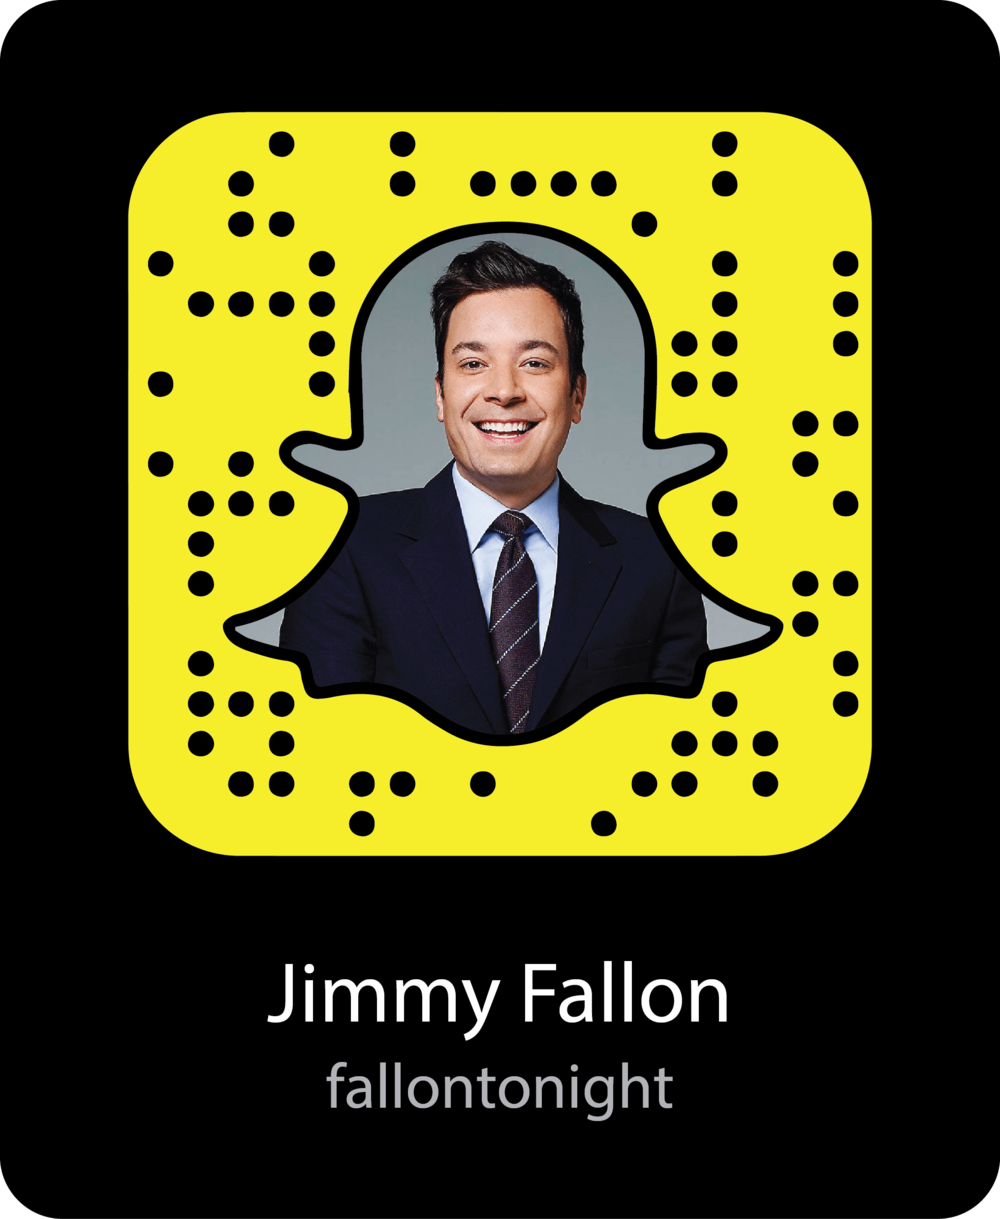 jimmy-fallon-celebrity-snapchat-snapcode